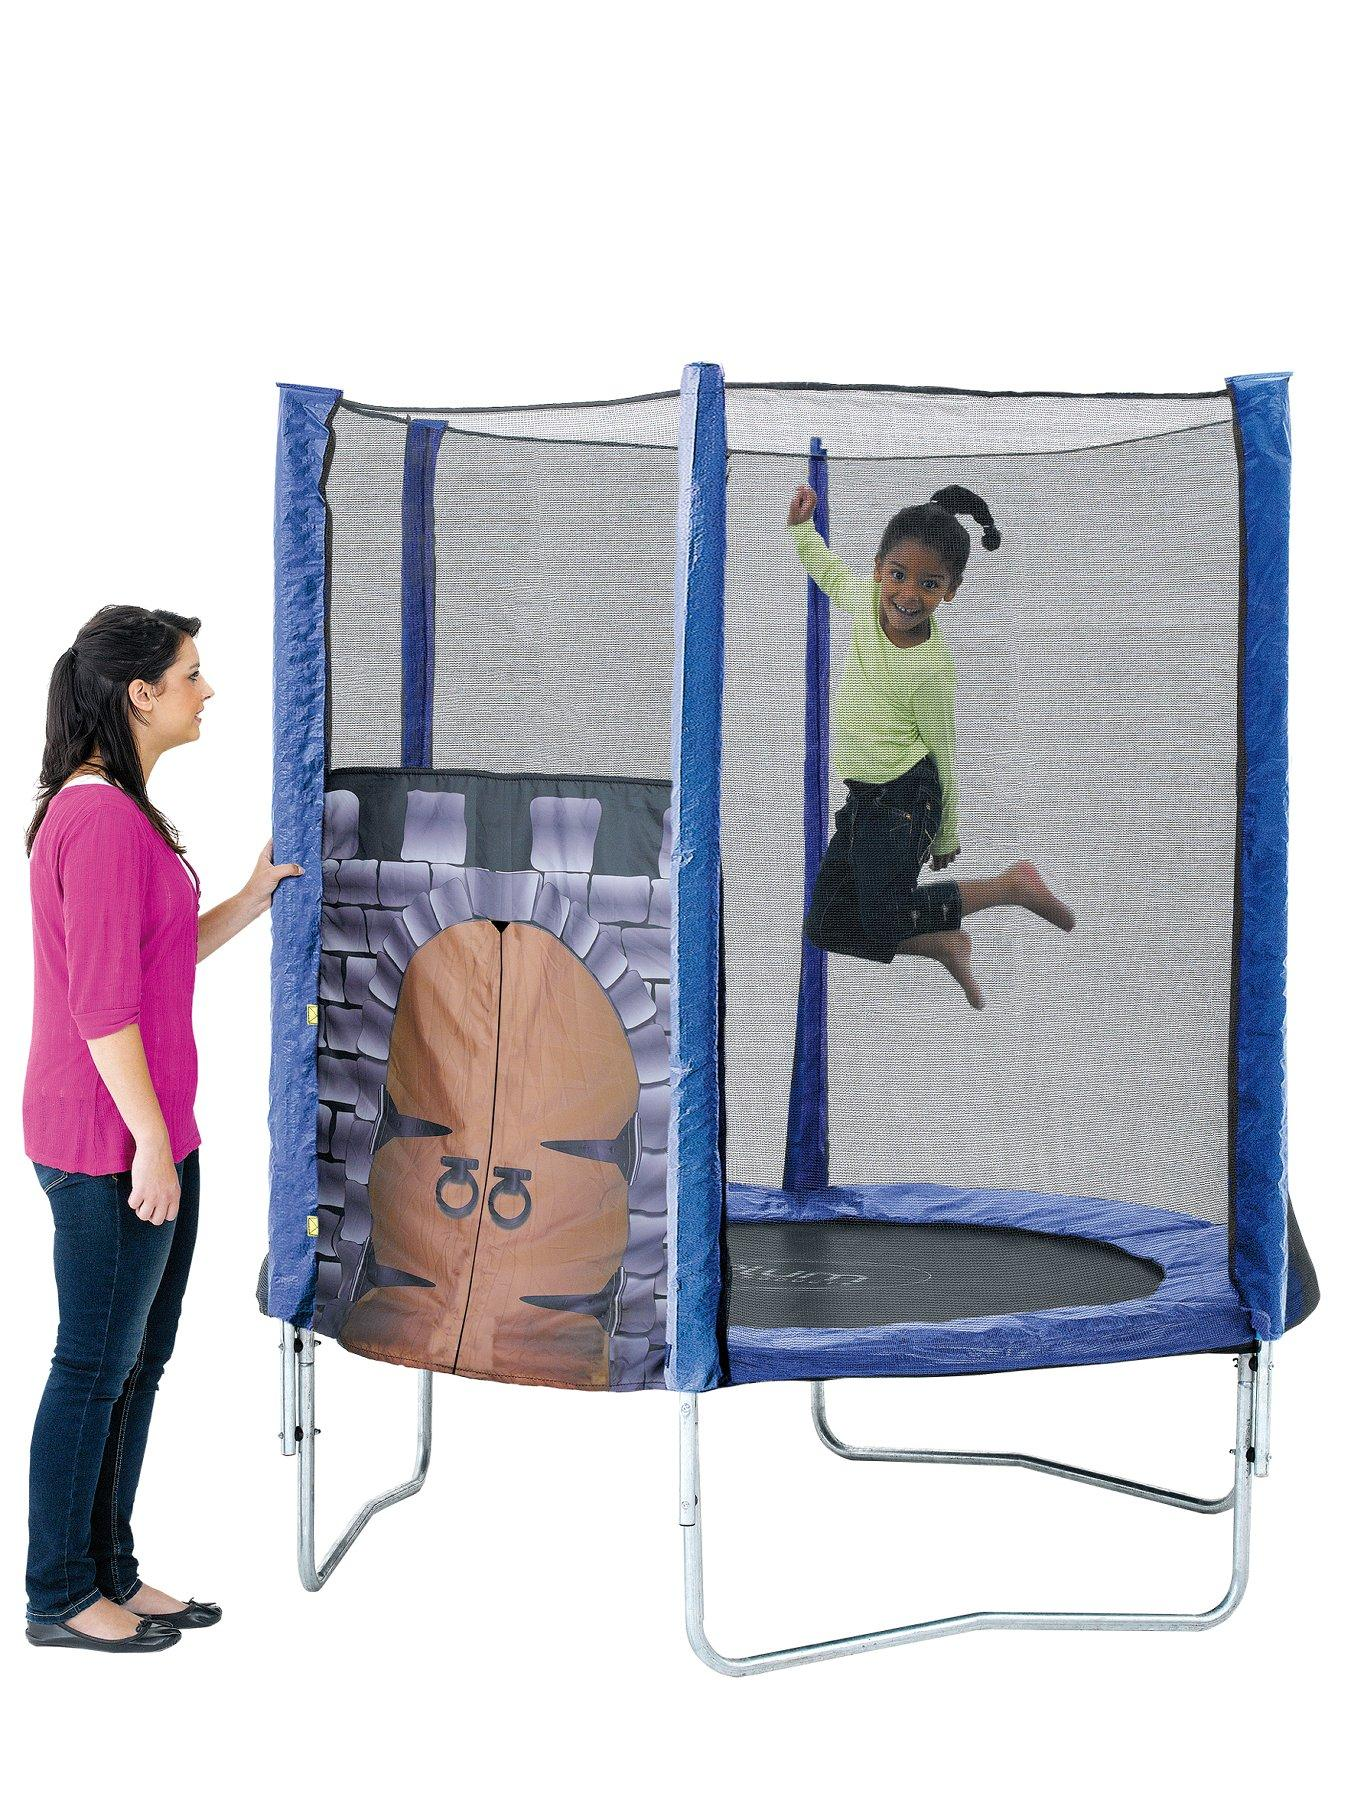 King's Fortress 6 ft Trampoline and Enclosure